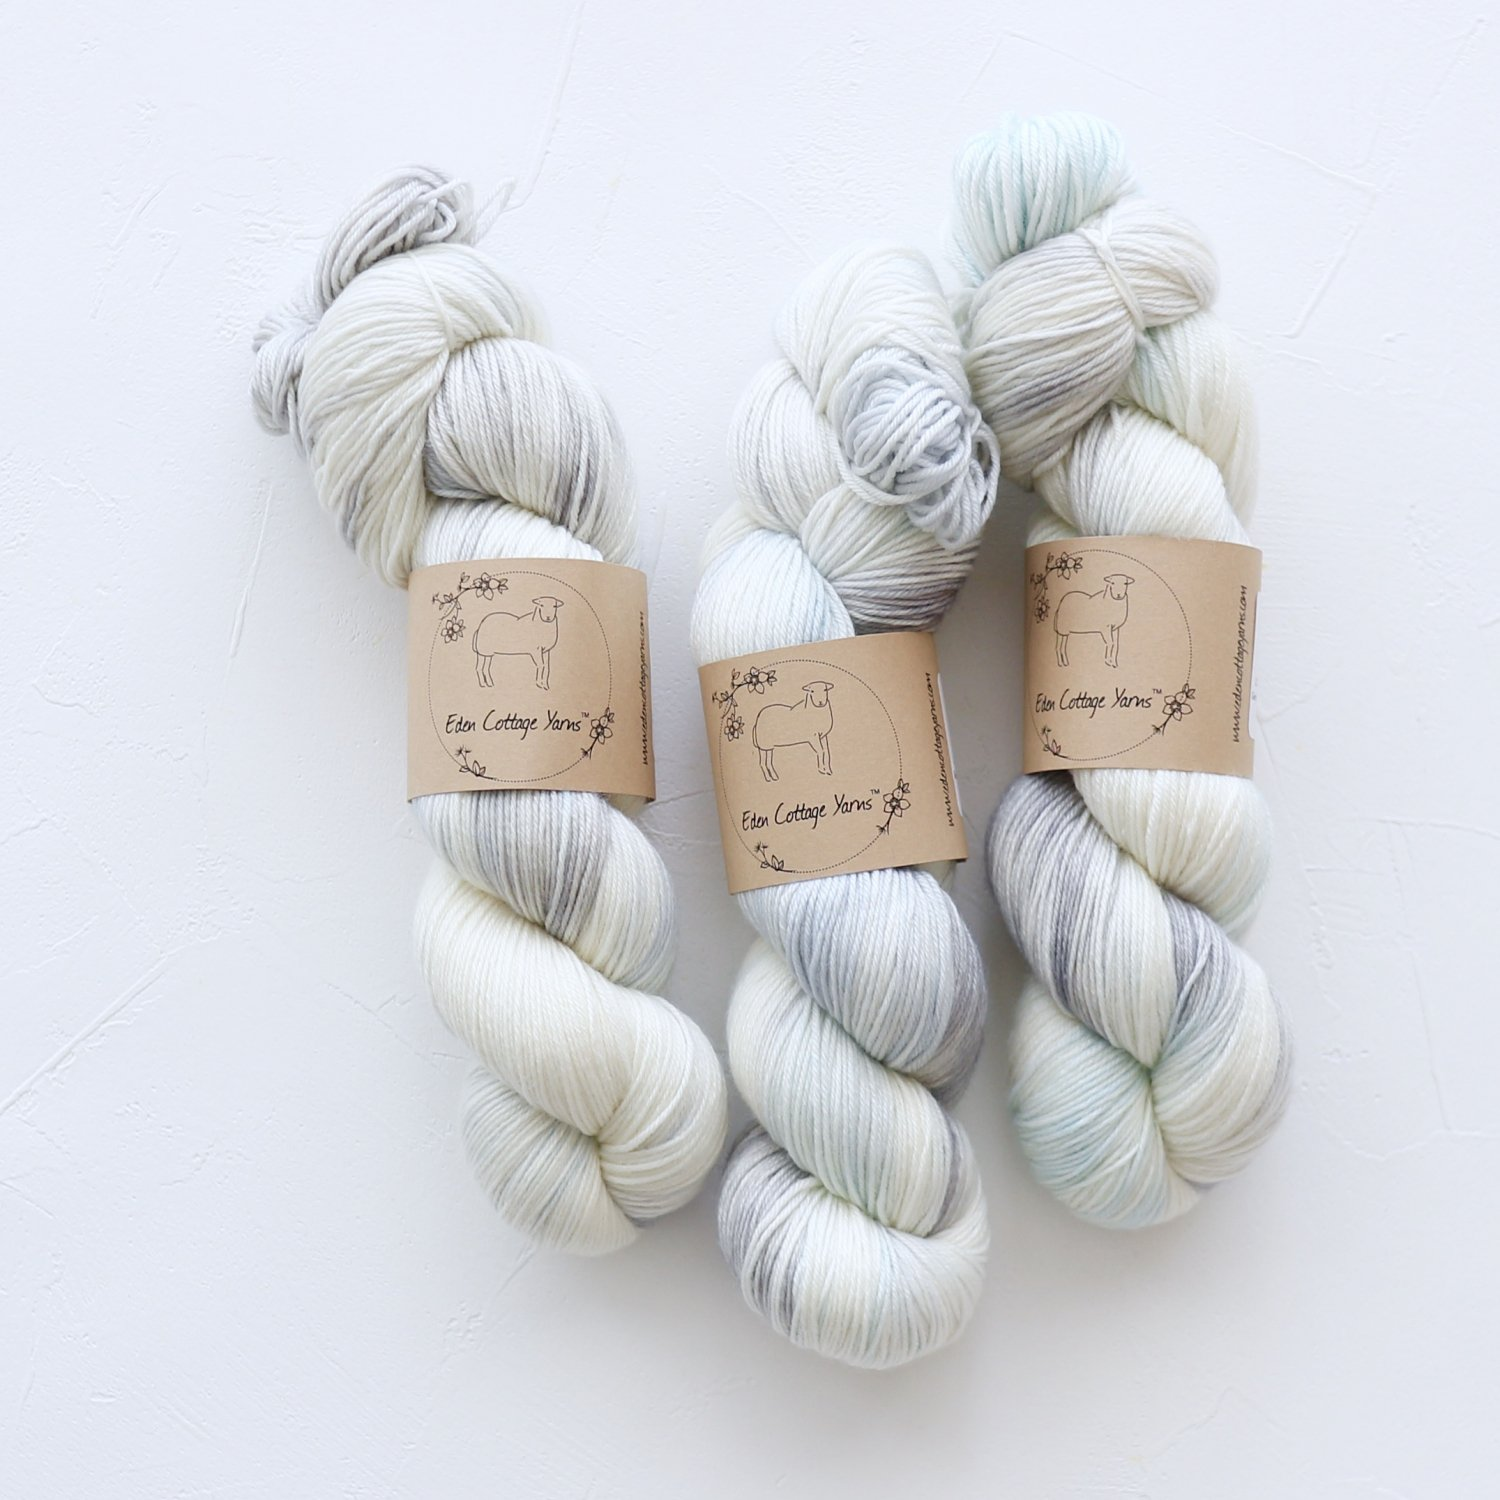 【Eden Cottage Yarns】<br>Pendle 4ply<br>Snowfall